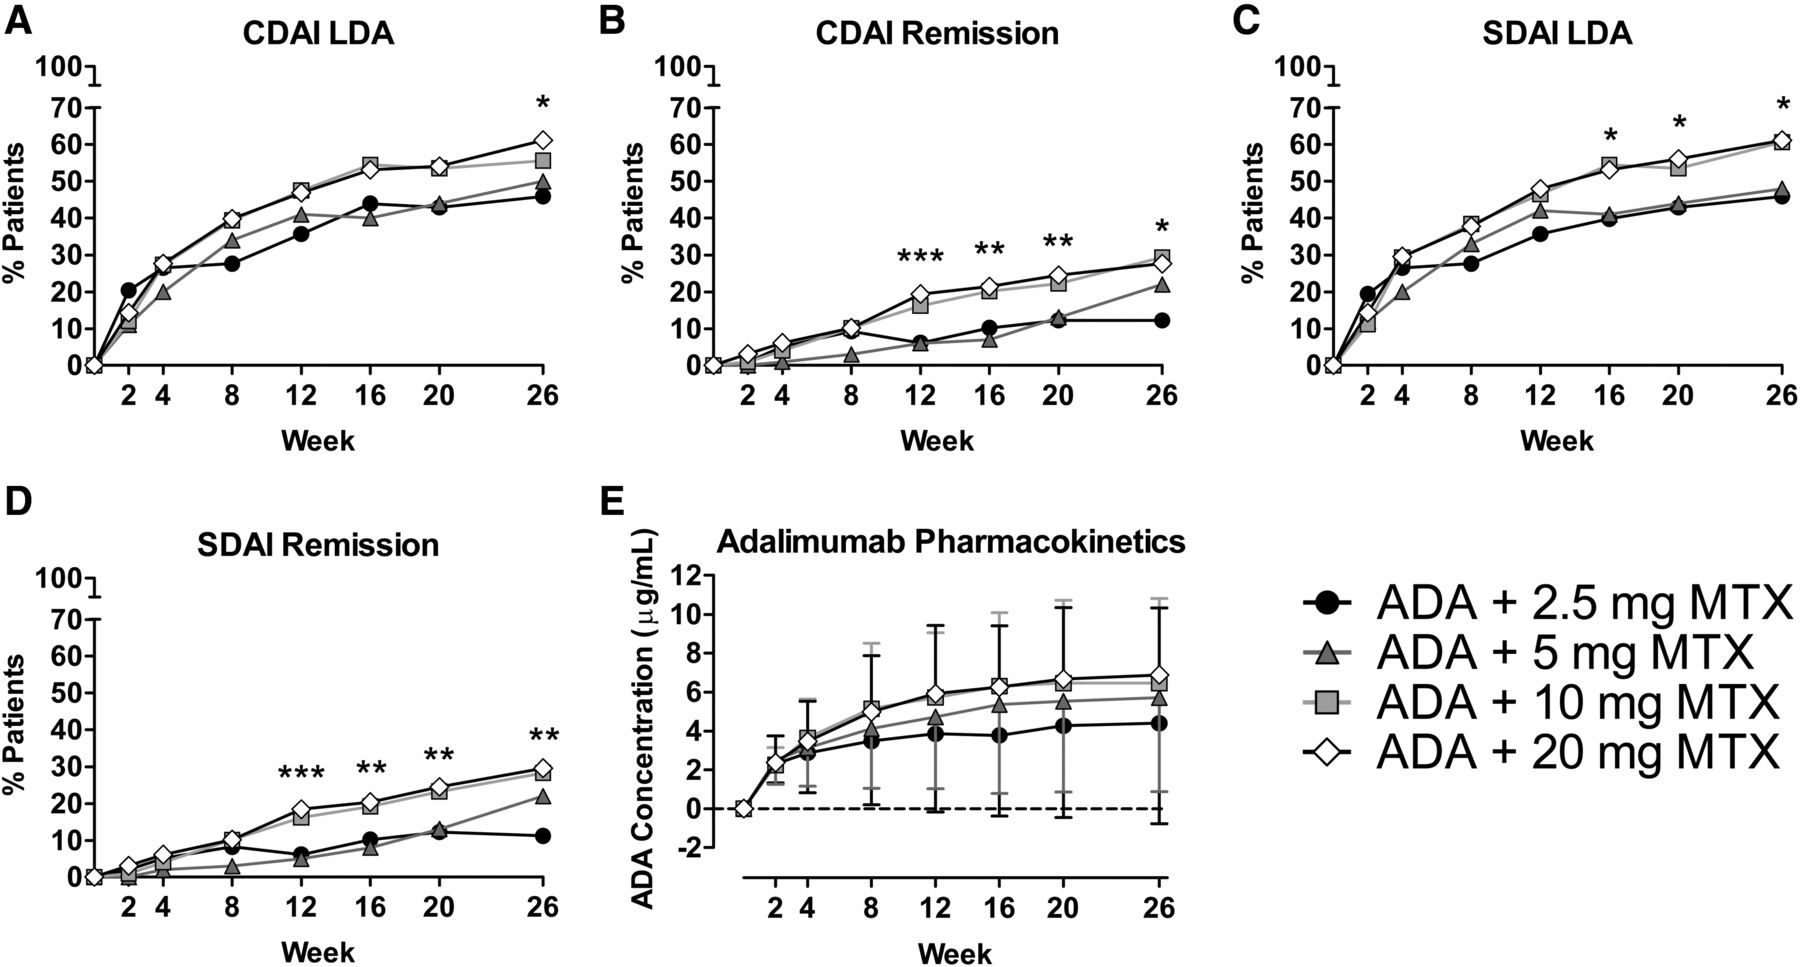 Efficacy and safety of ascending methotrexate dose in combination